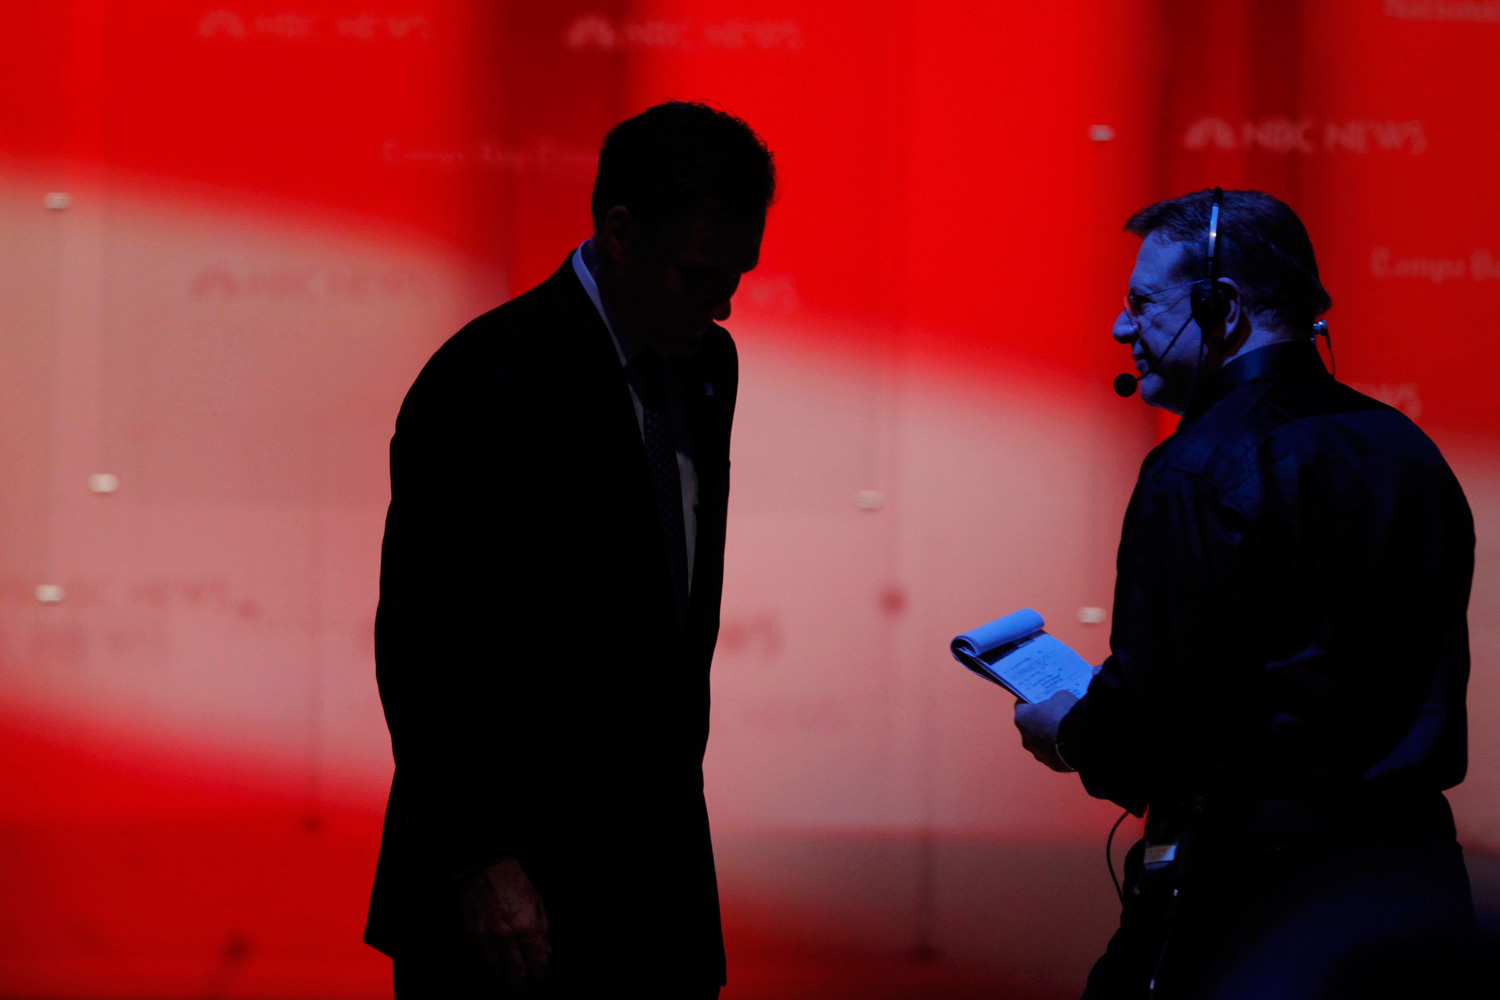 January 23, 2012. Republican presidential candidate and former Massachusetts Governor Mitt Romney (L) is silhouetted as he walks off stage following the Republican presidential candidates debate in Tampa, Fla.